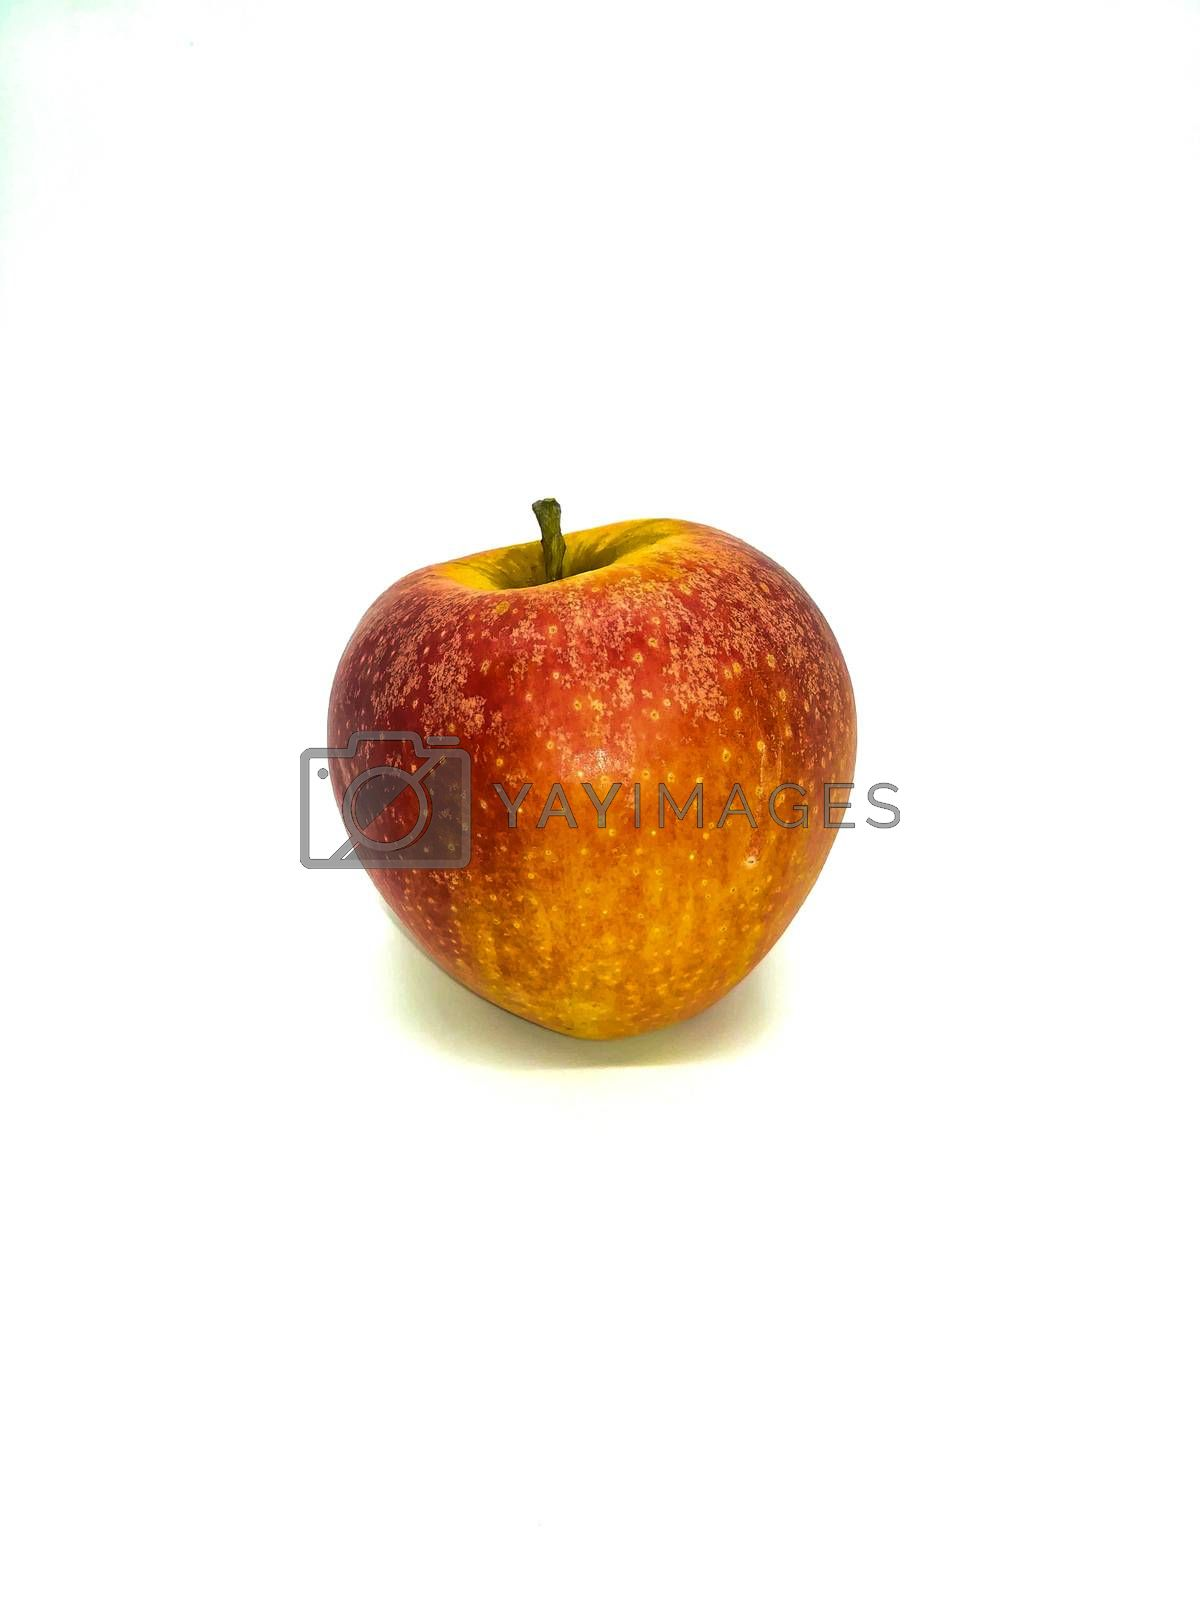 Red apple with yellow speckles on white background